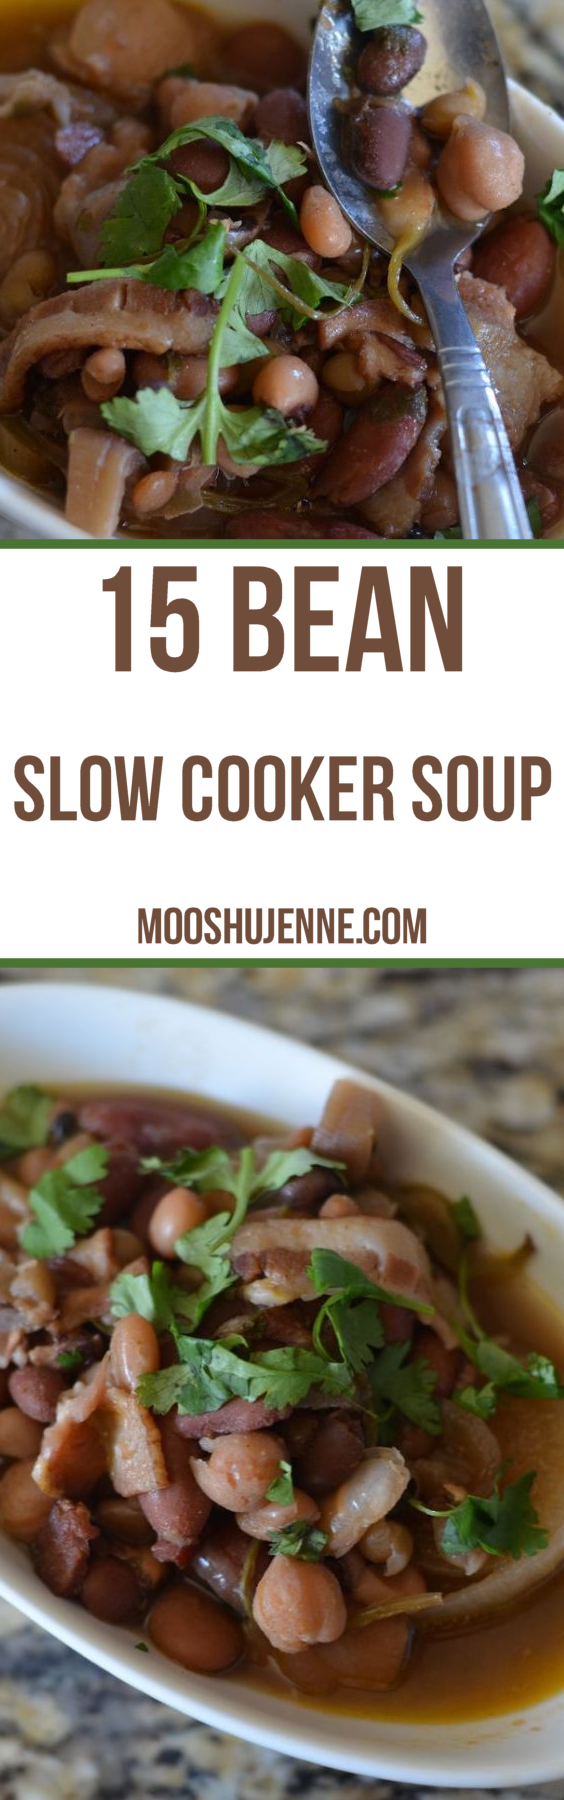 15 Bean Slow Cooker Soup